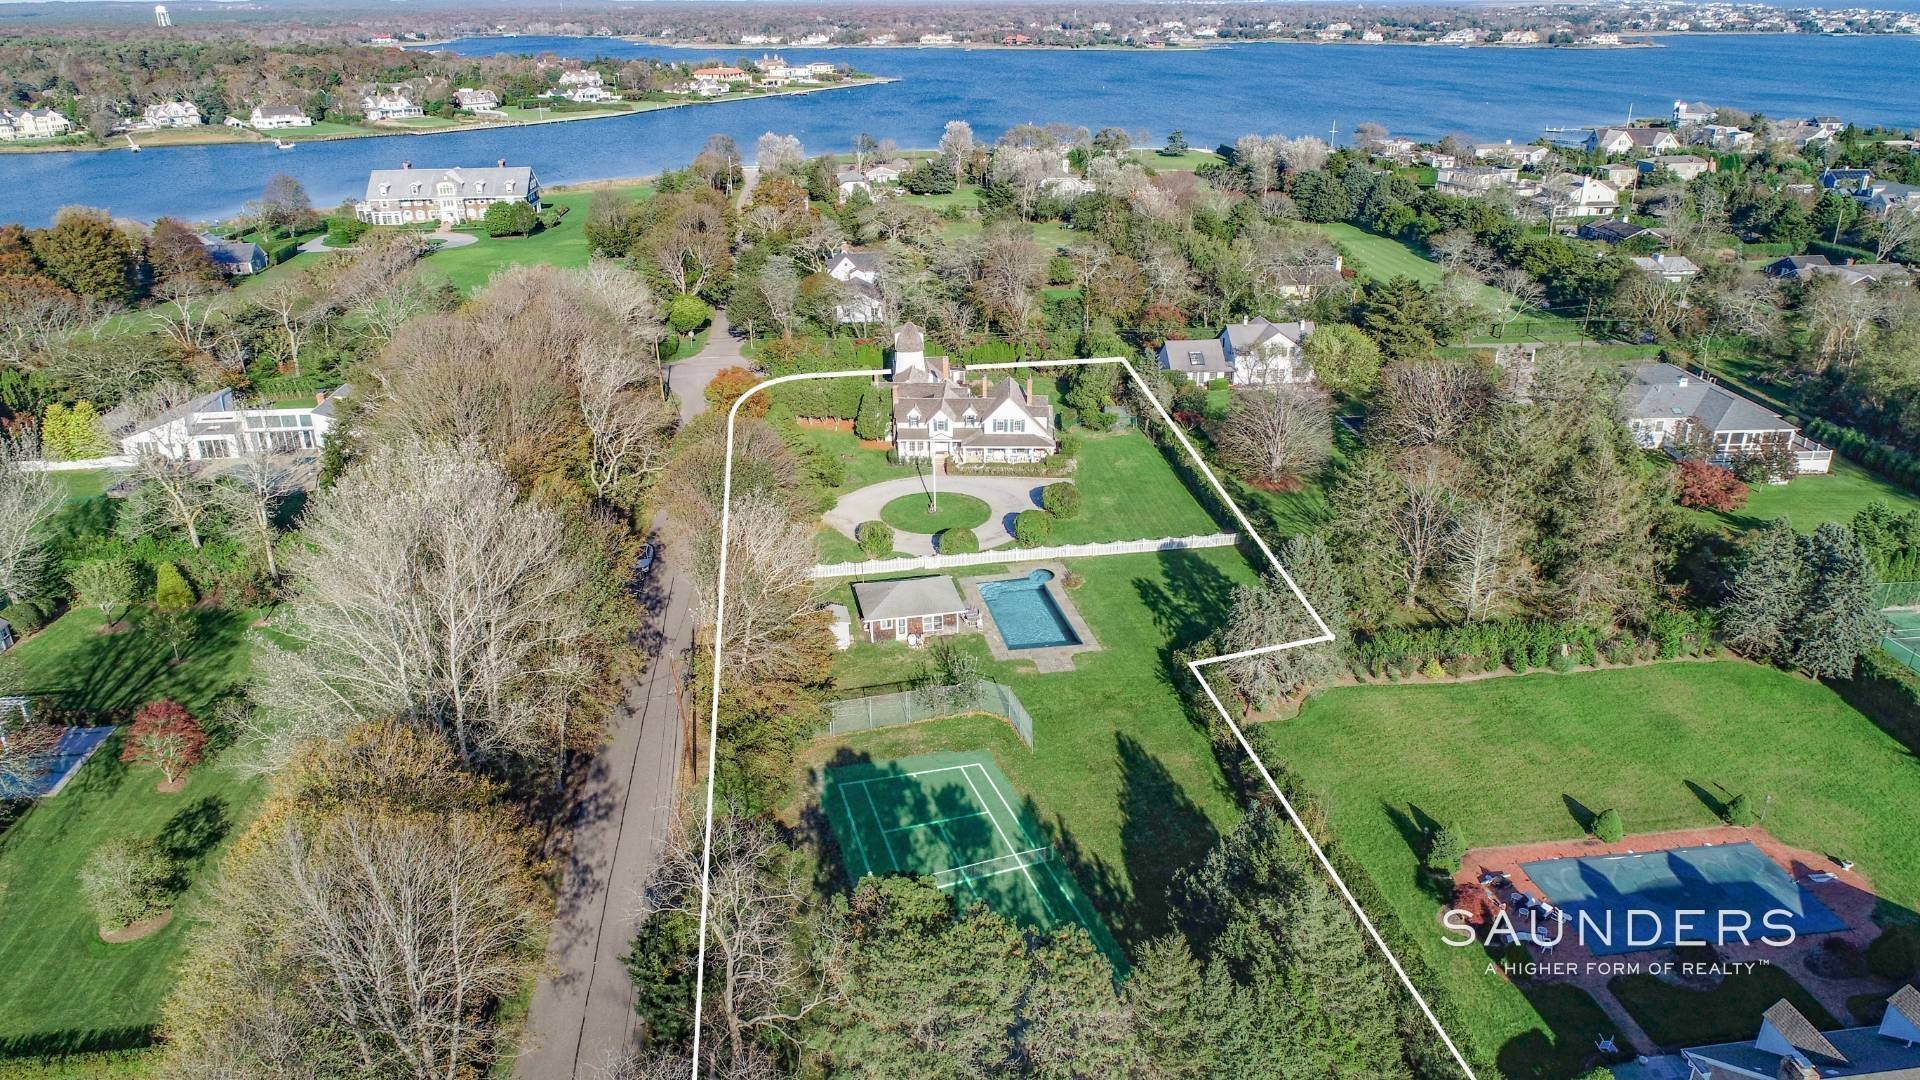 Single Family Homes at Westhampton Village Grand Dame With Pool, Tennis & Pool House 15 Sunswyck Lane, Westhampton Beach Village, Southampton Town, NY 11978